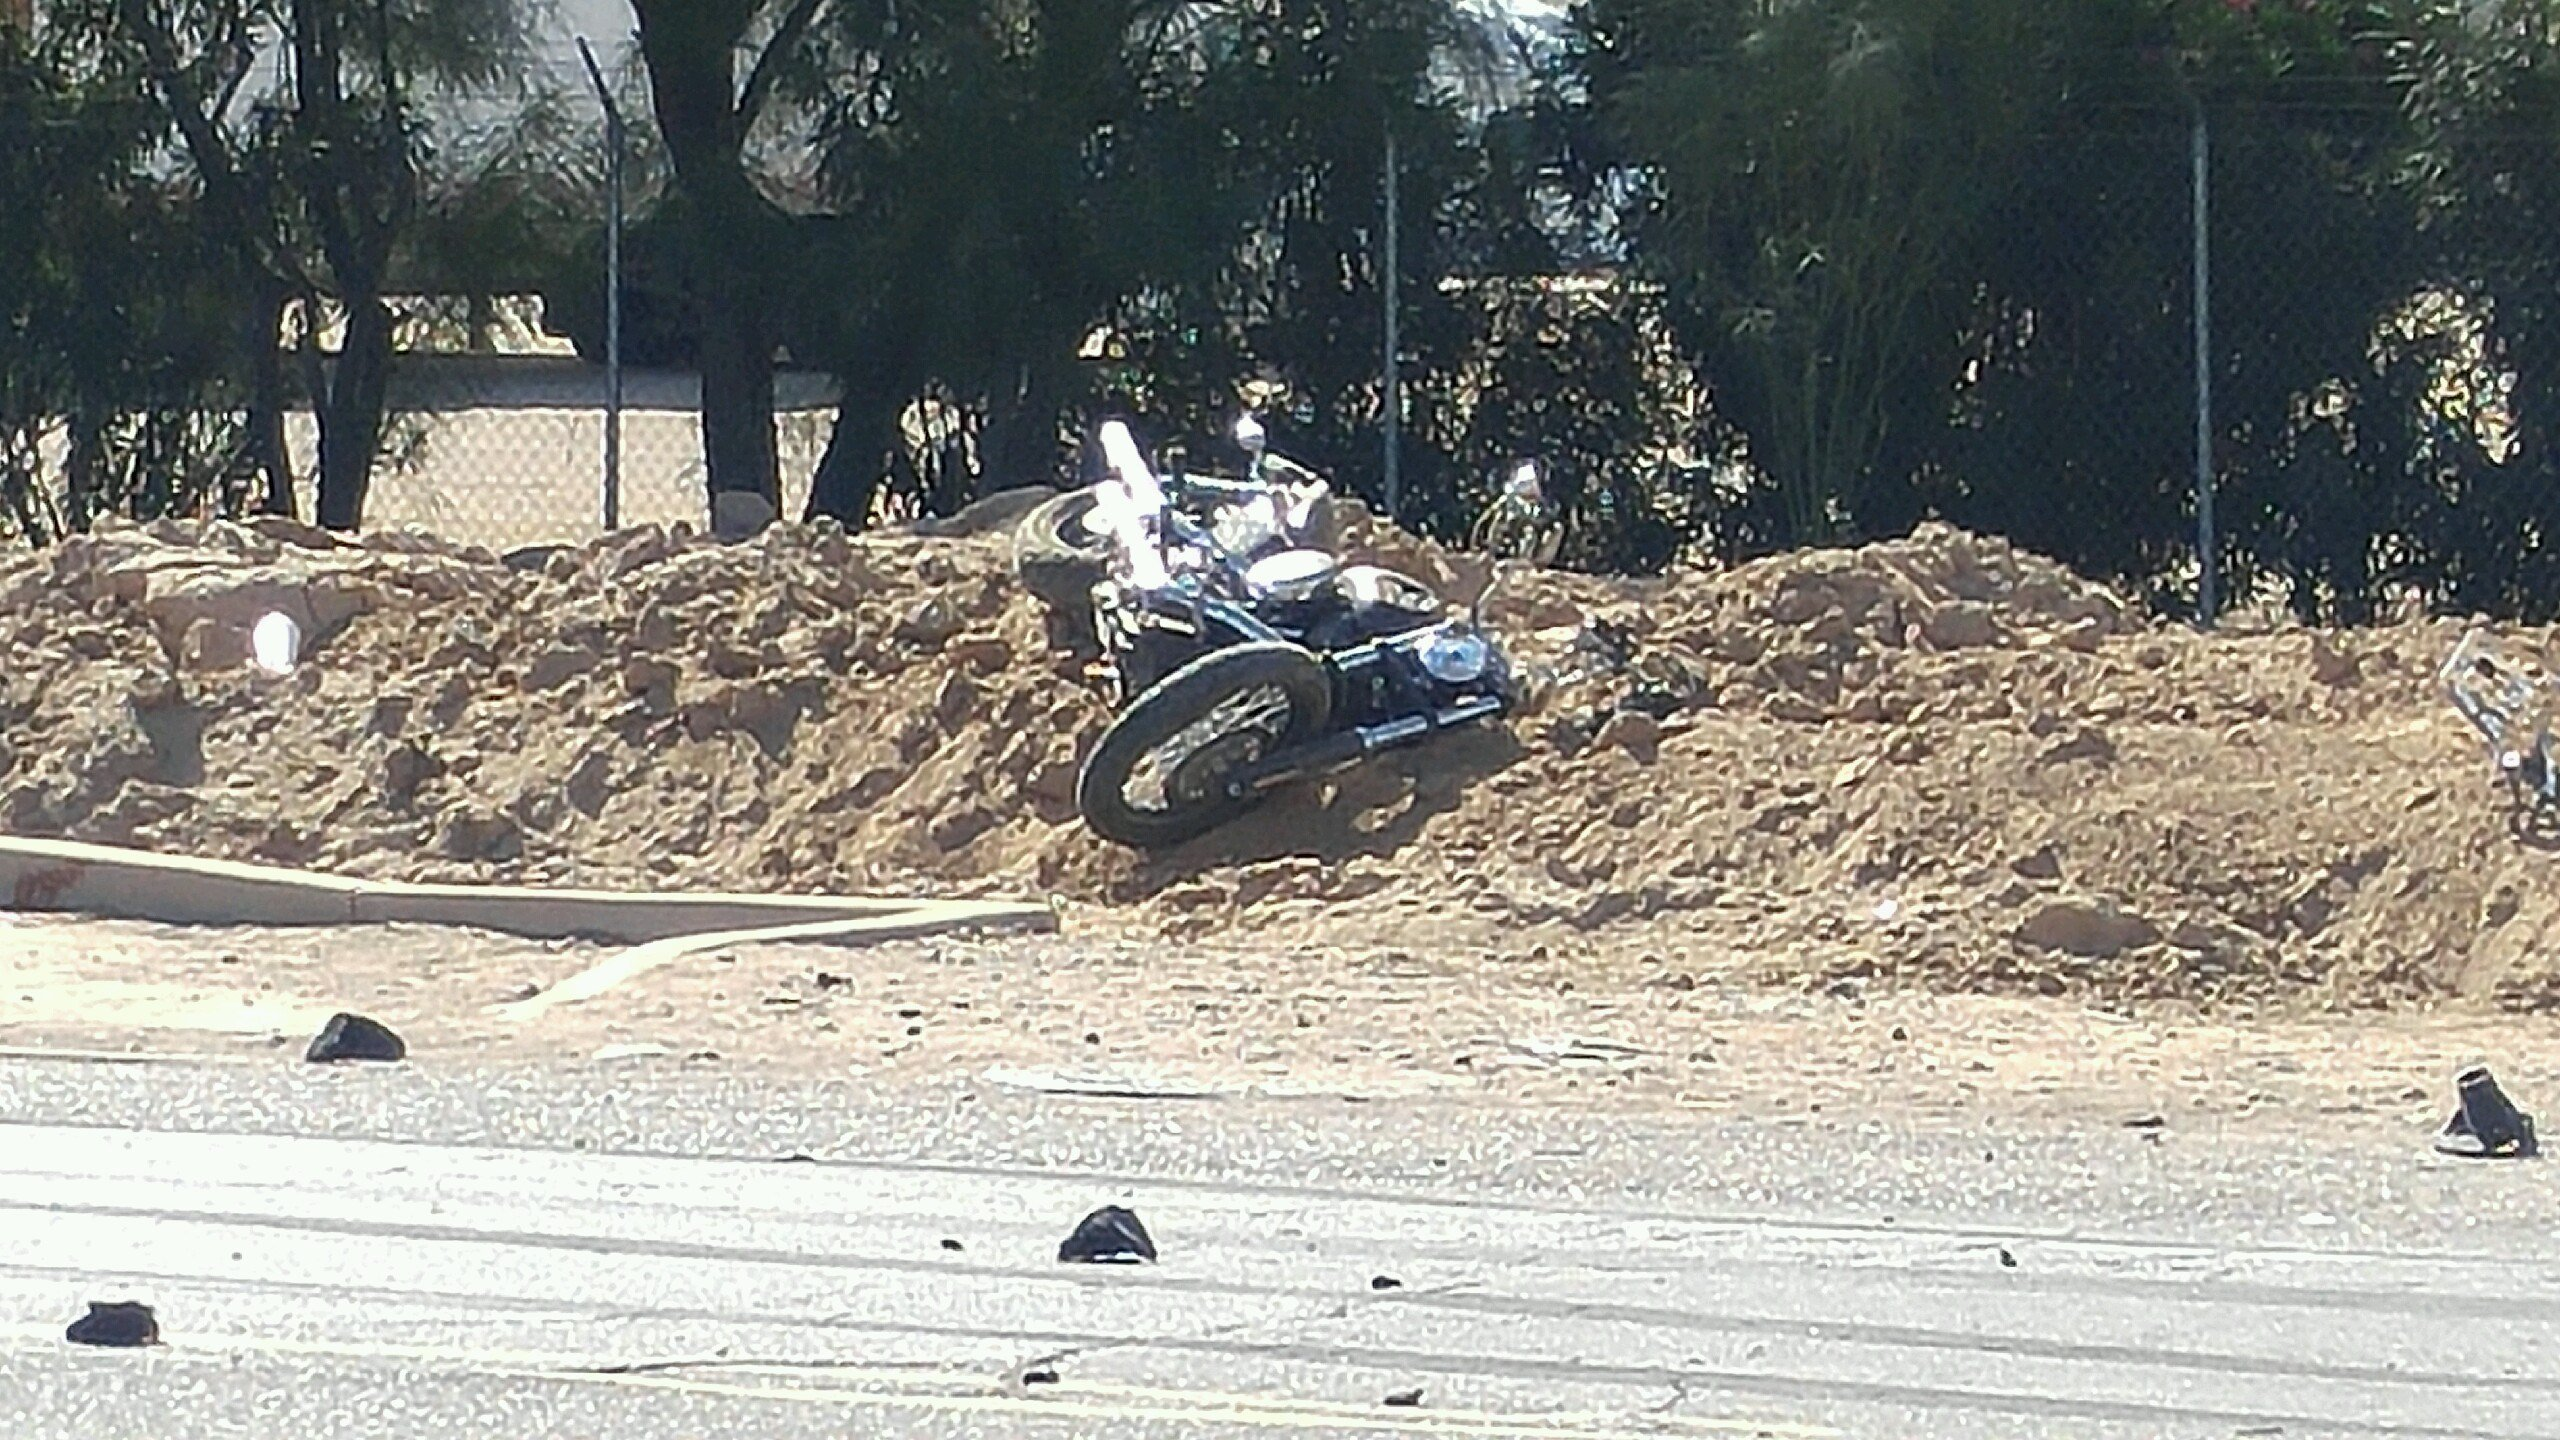 Police say Lopez, three passengers in his car and a 42-year-old man on a motorcycle were hospitalized with injuries following the crash Sunday morning that sent Lopez's vehicle into a canal. (Source: 3TV/CBS 5)